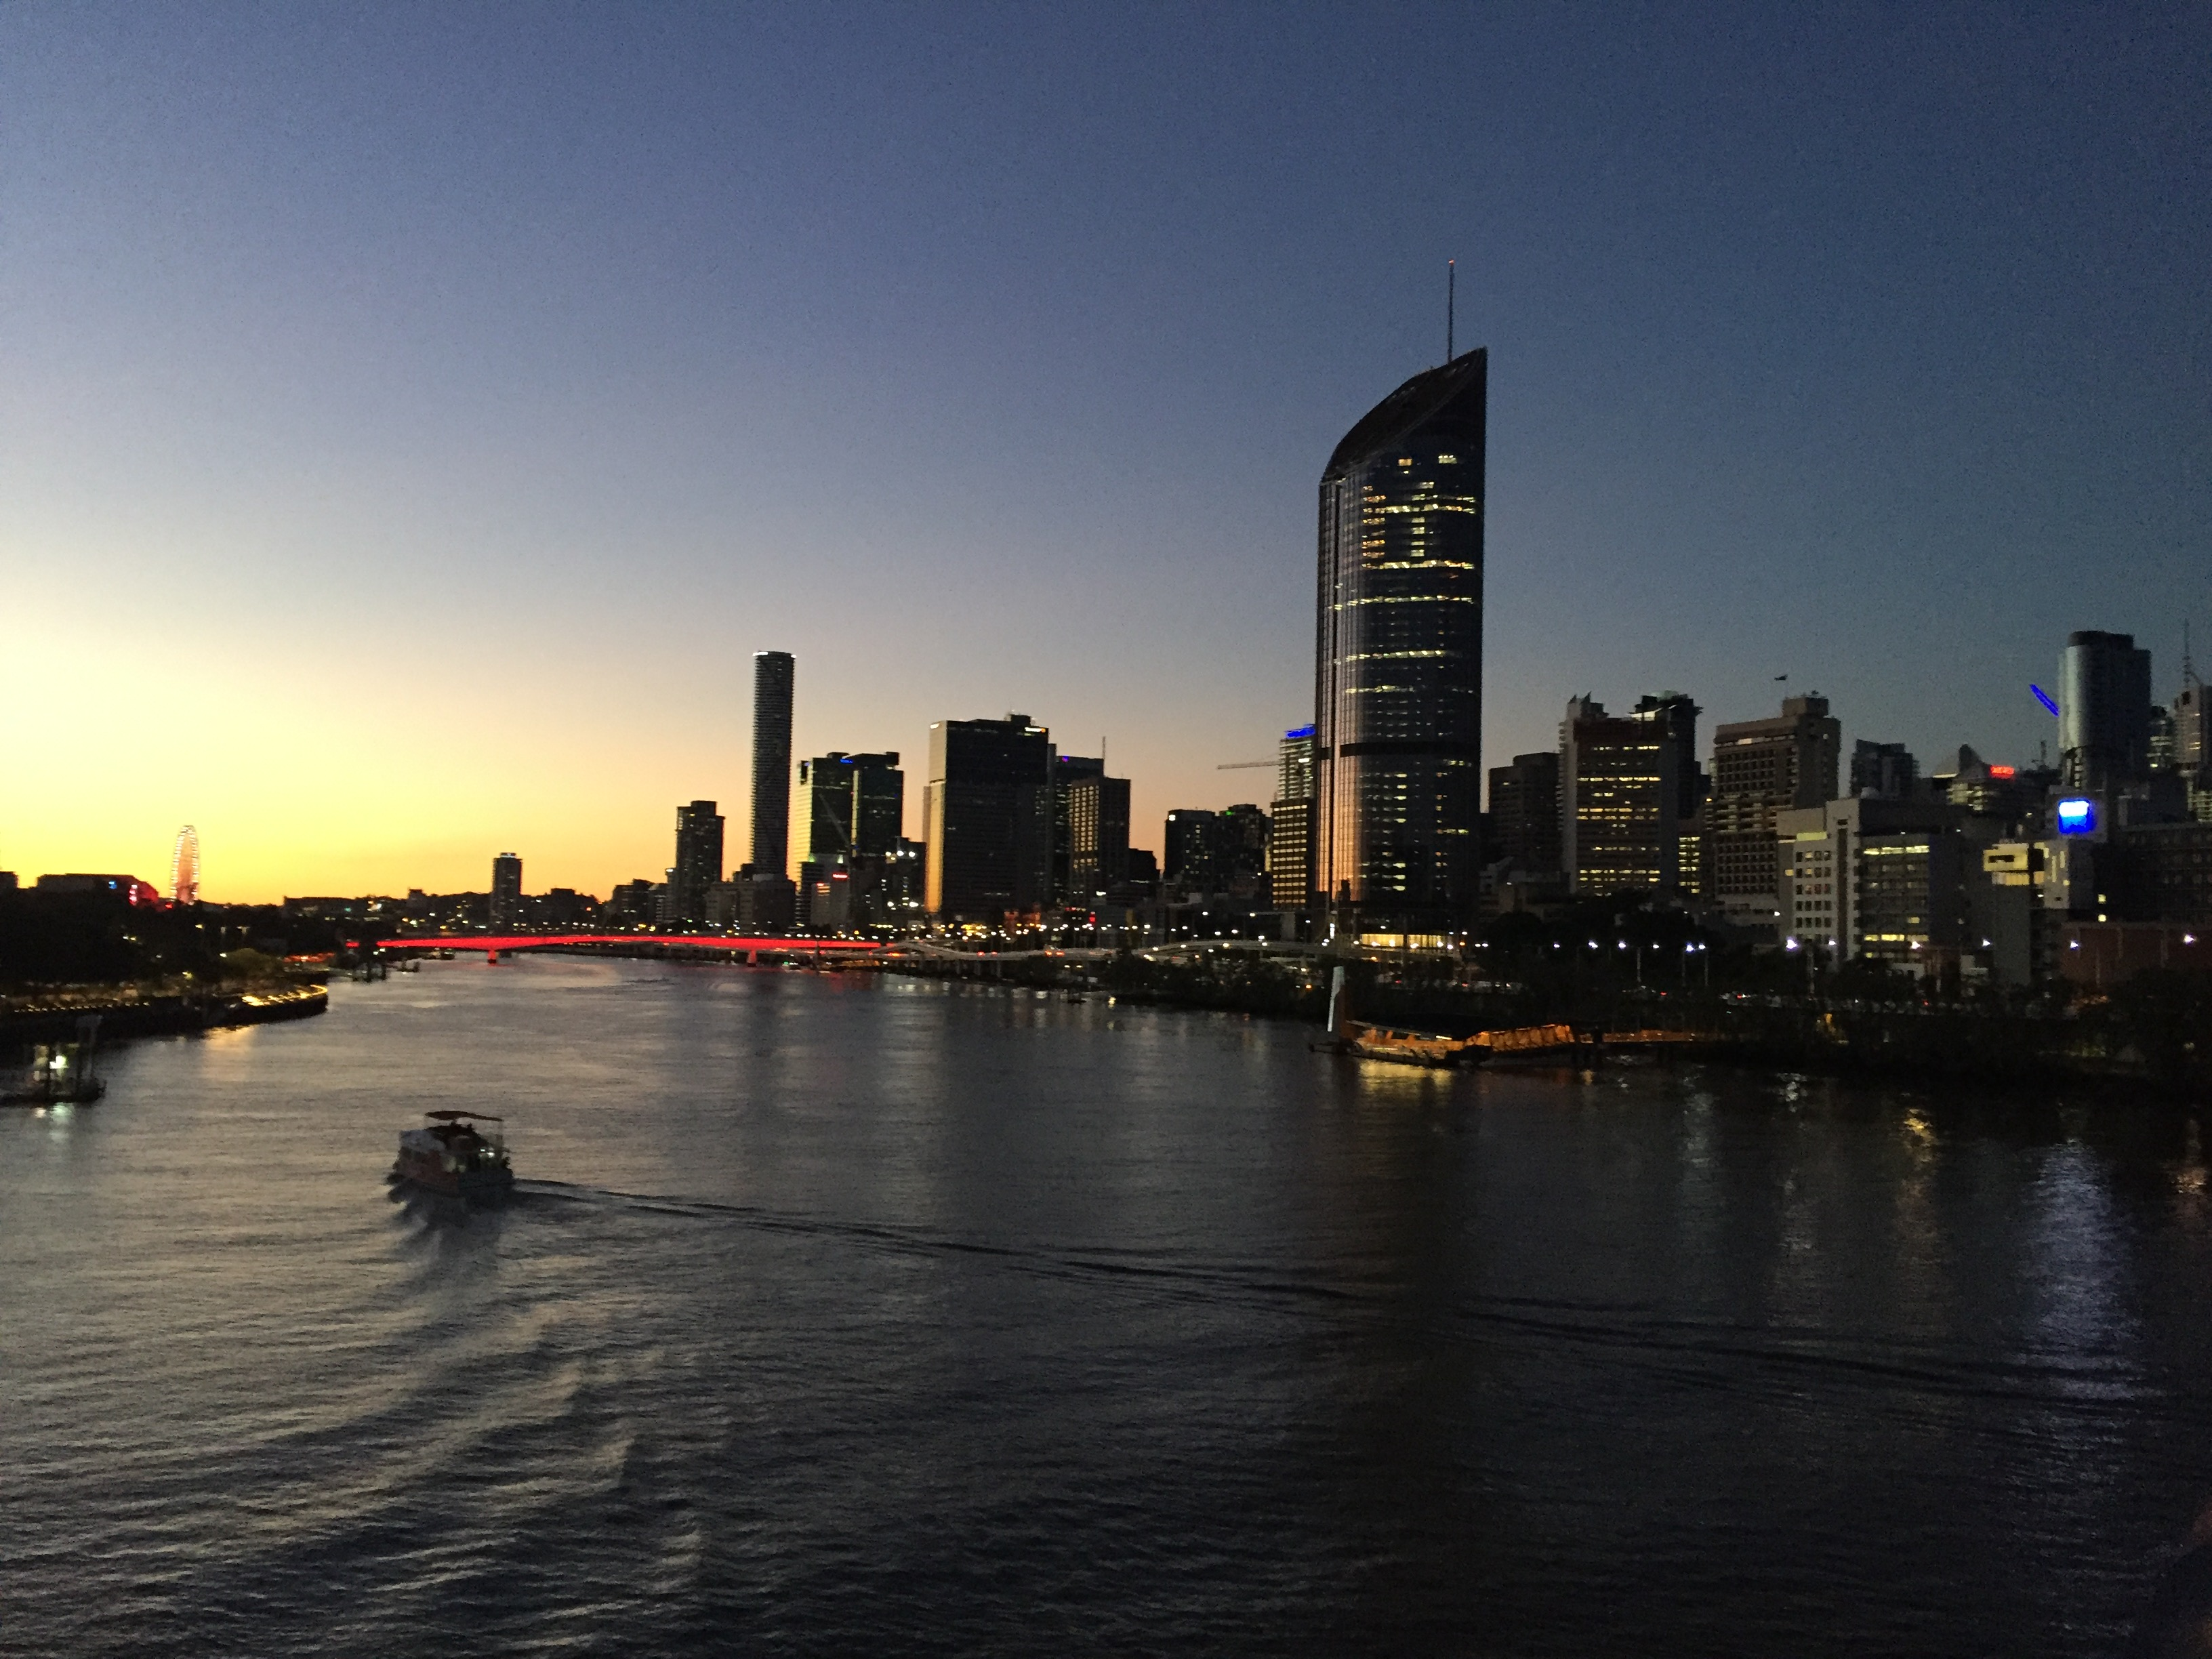 Brisbane, things to do in queensland, gold coast, things to do in the gold coast, exploring brisbane, exploring queensland Australia, Australia